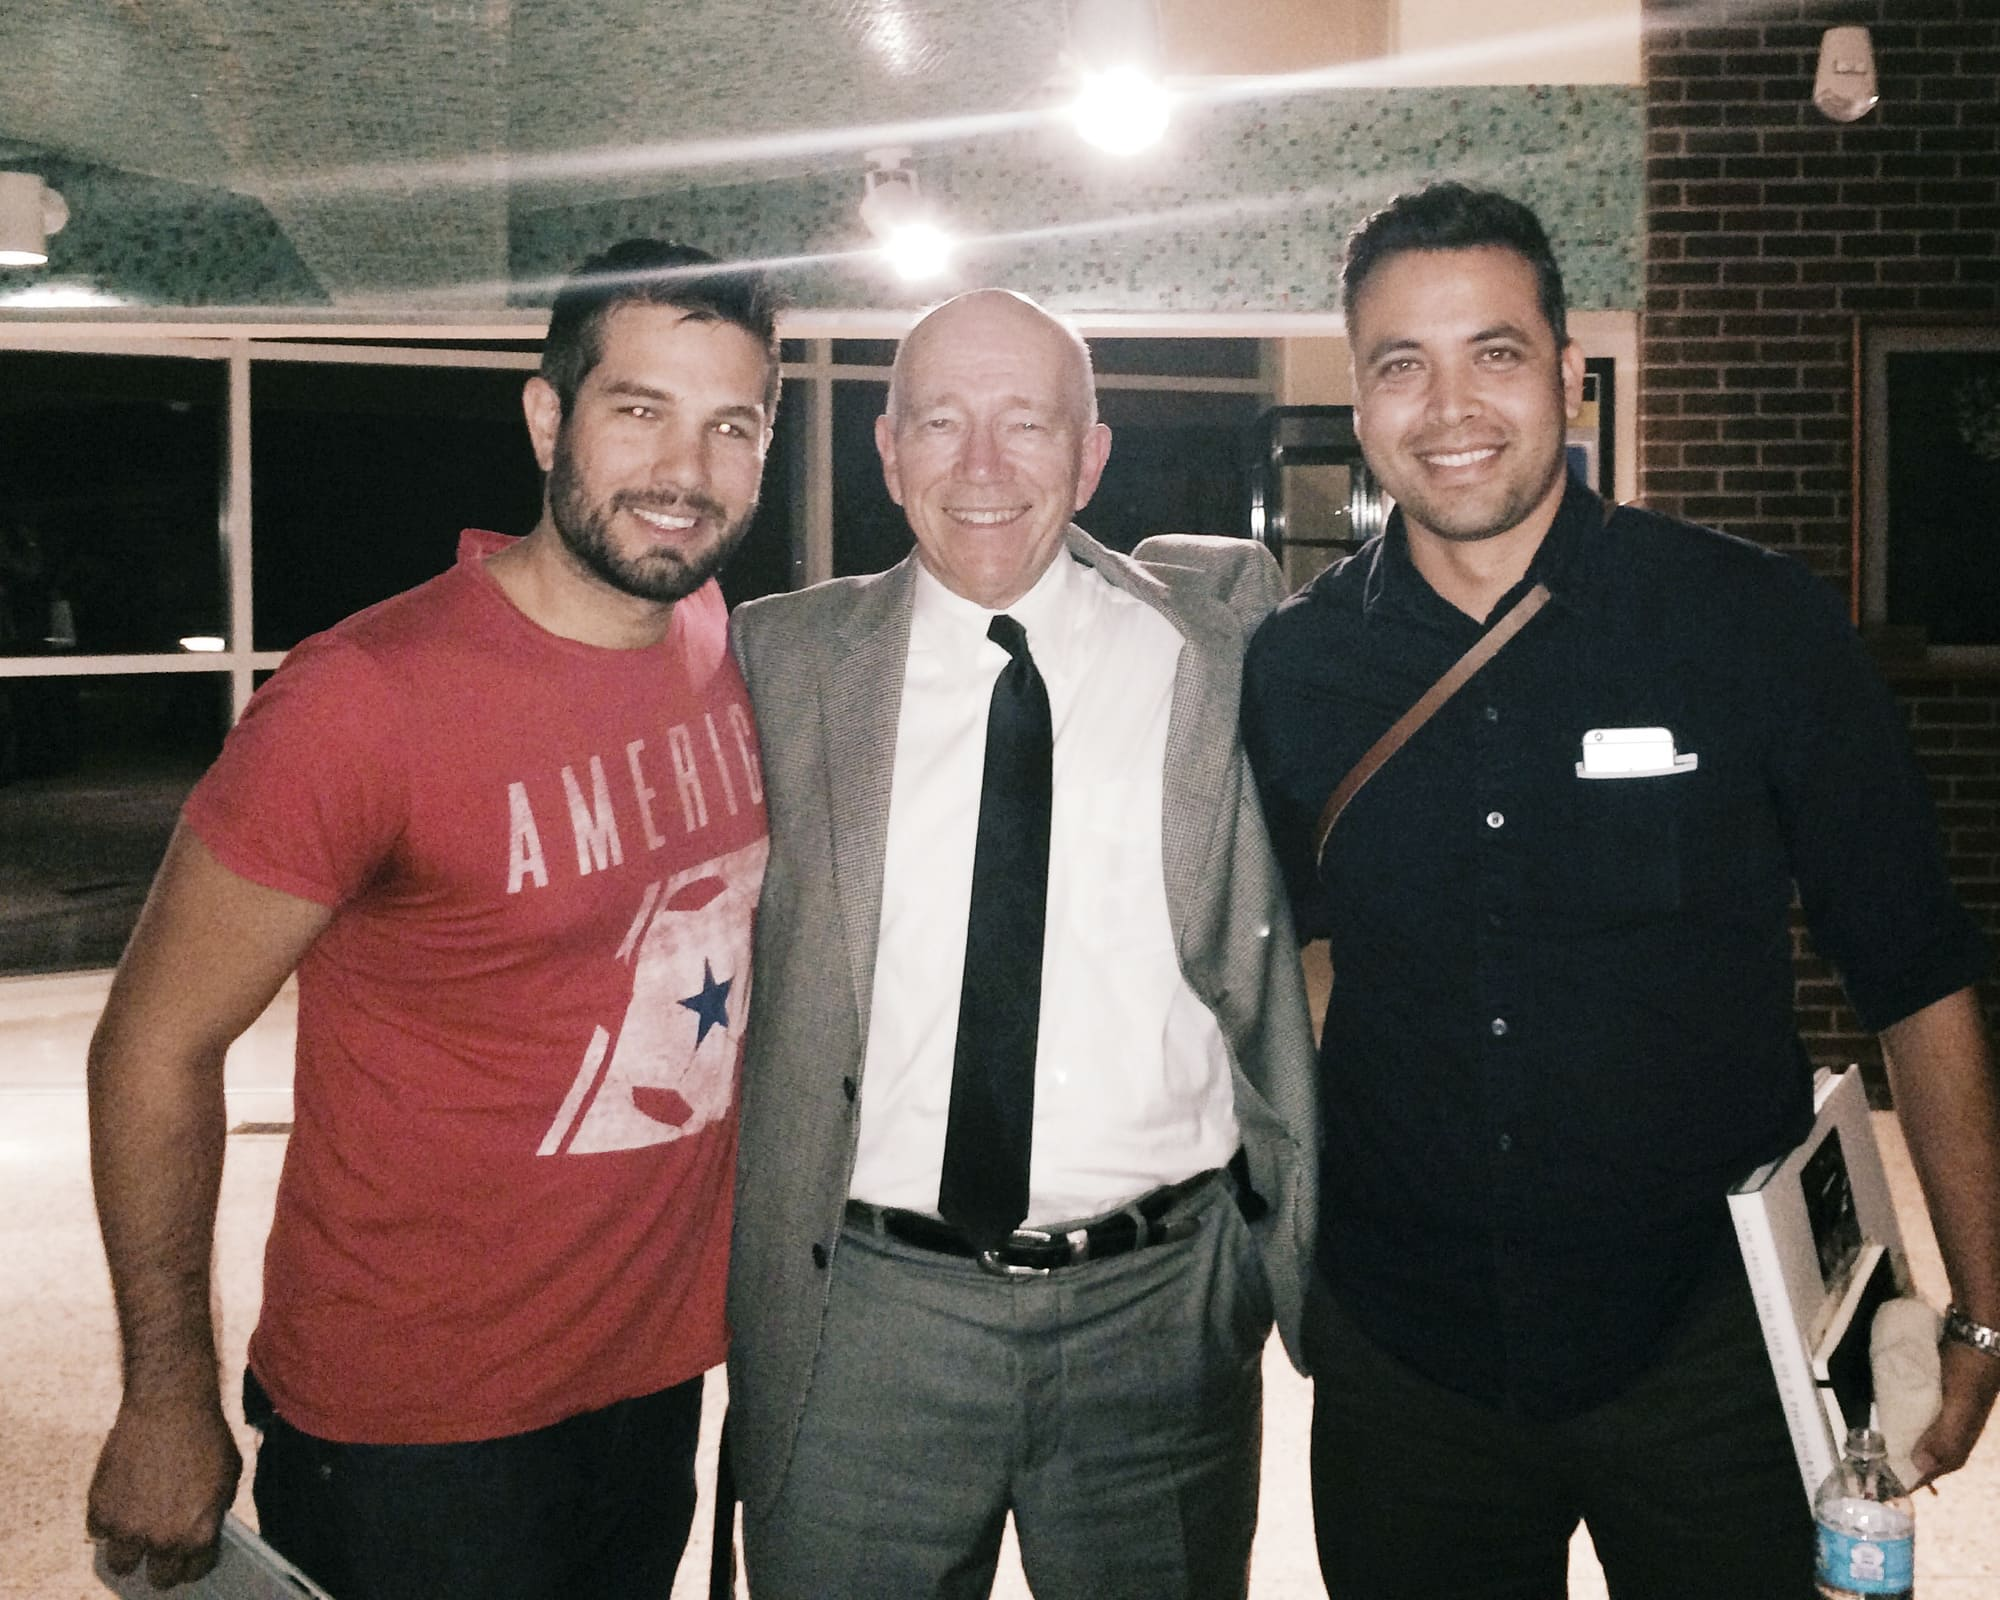 Hiram and I with Sam Abell